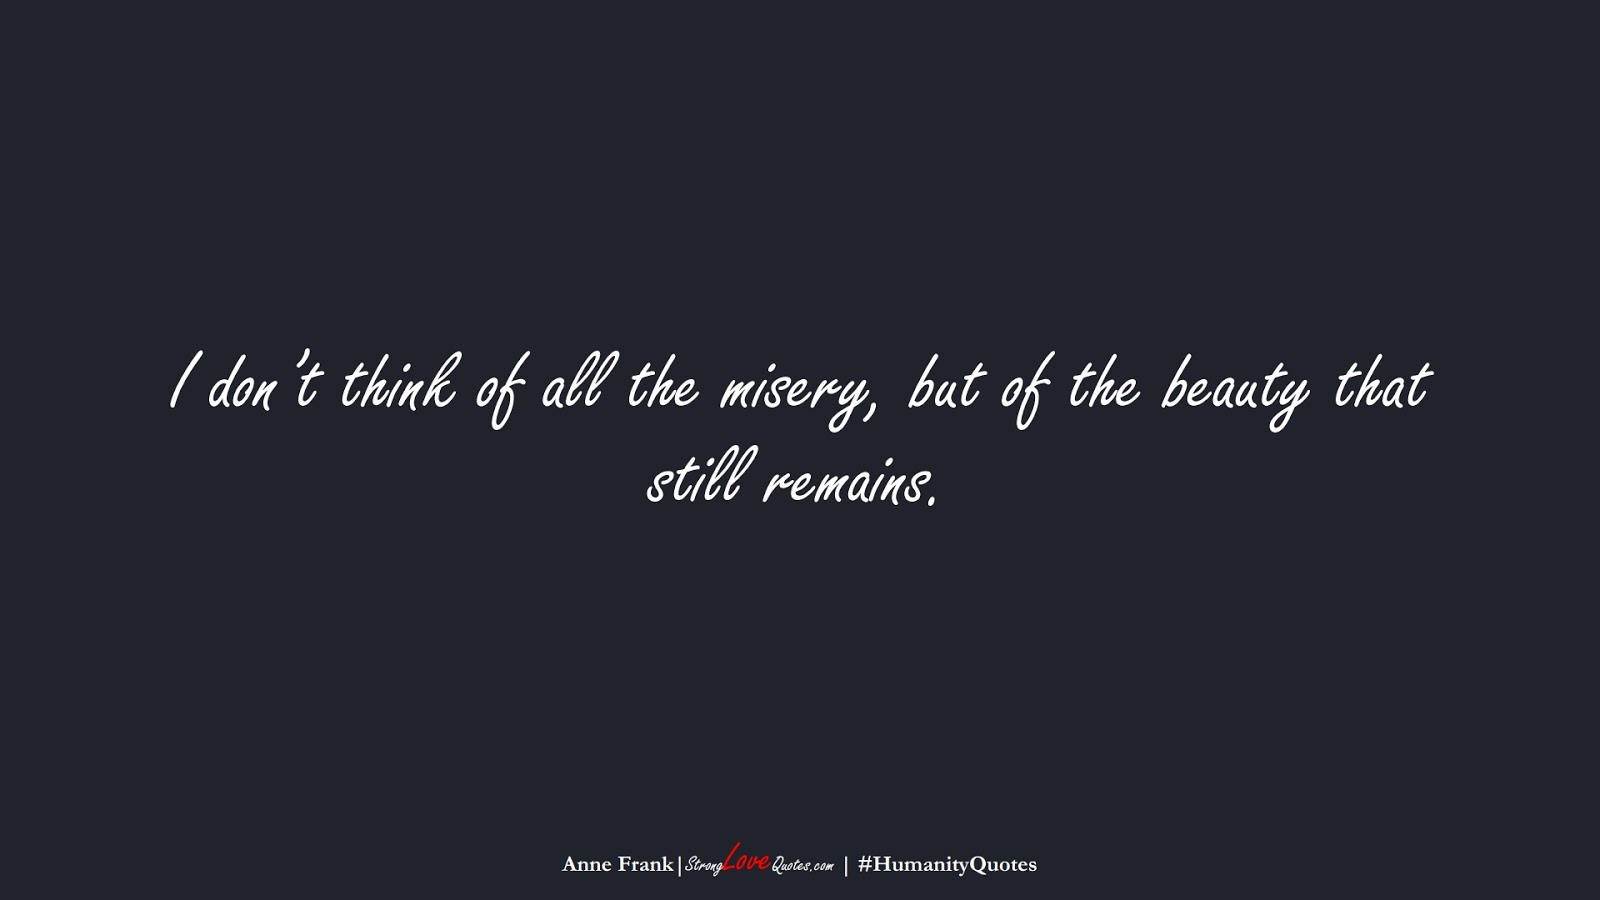 I don't think of all the misery, but of the beauty that still remains. (Anne Frank);  #HumanityQuotes